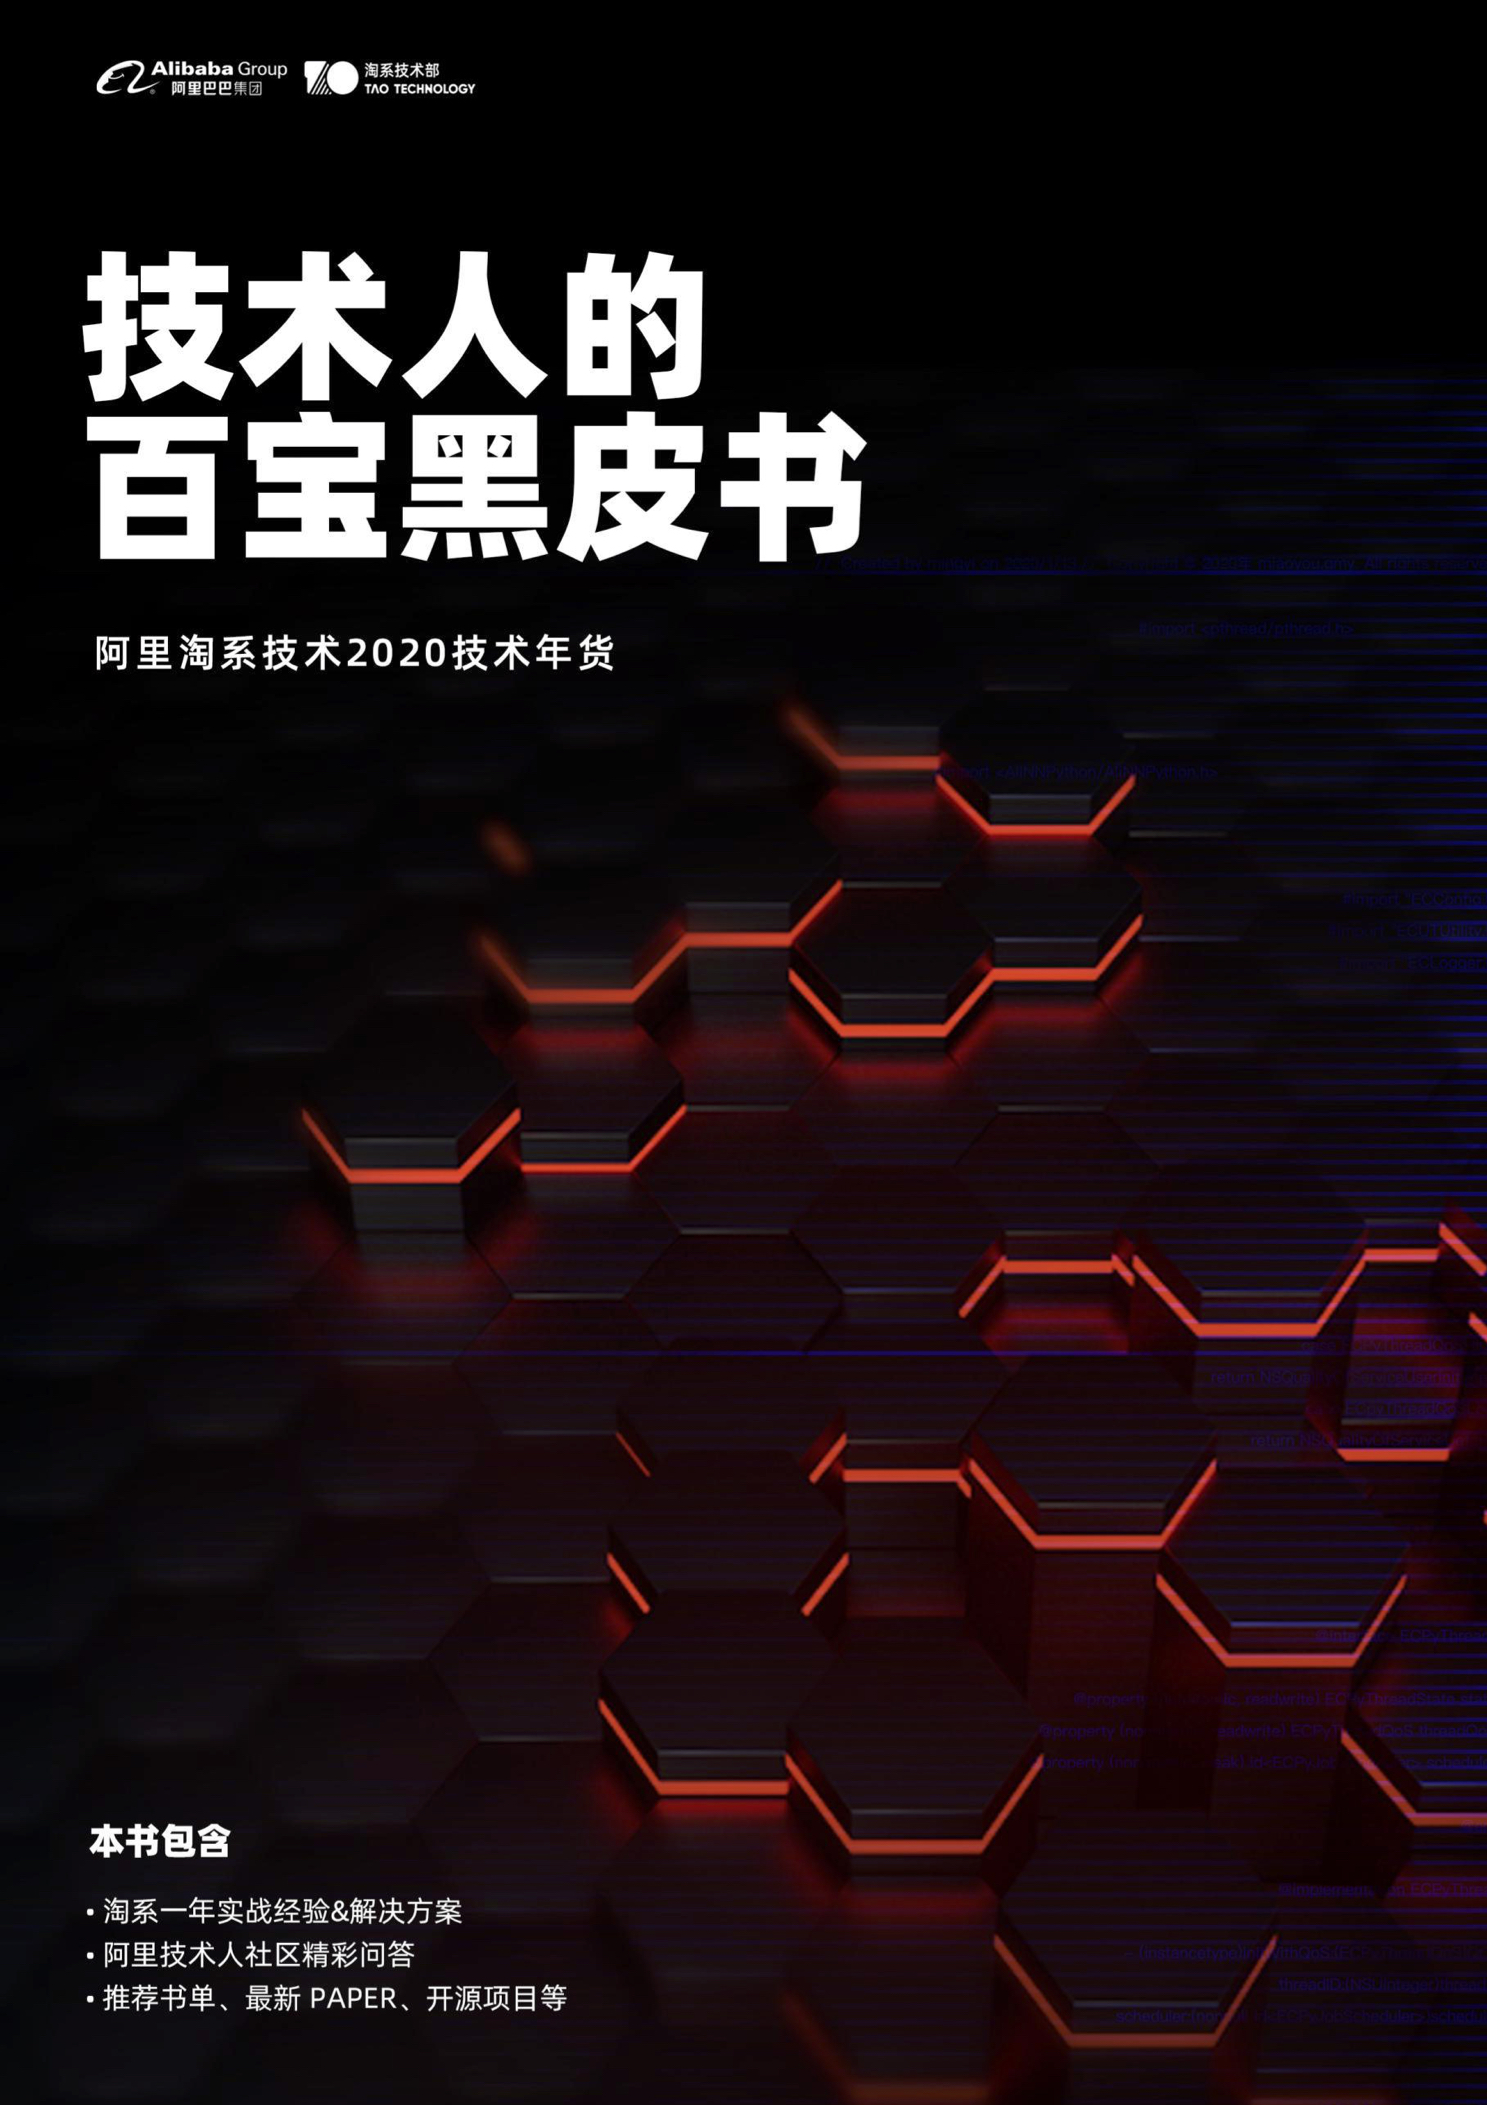 The Complete Works of Tao Technology 2020-00.jpg